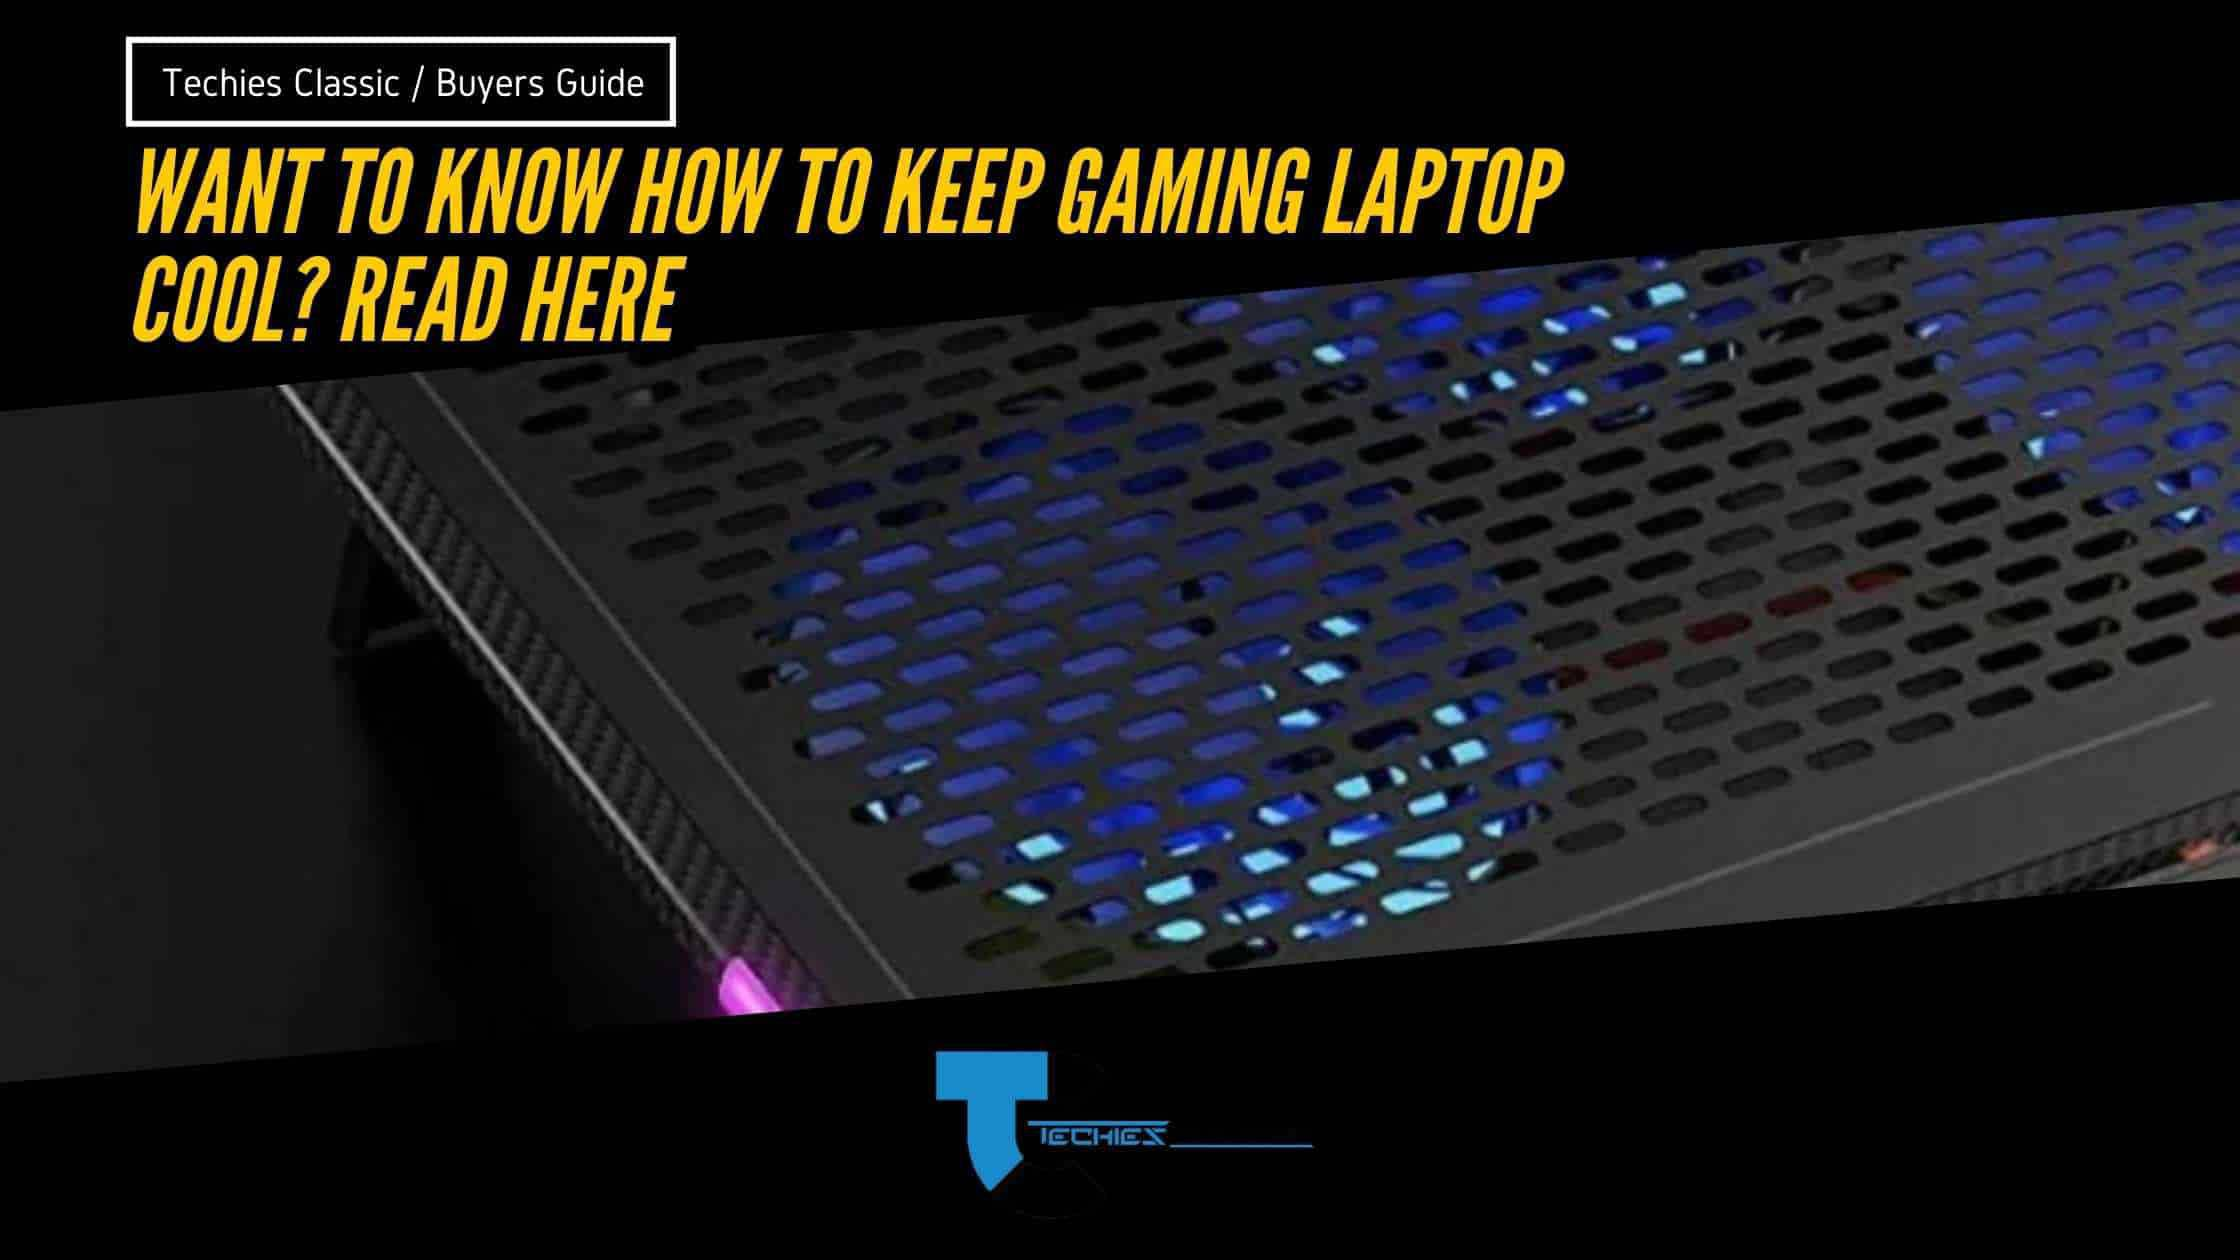 How To Keep Gaming Laptop Cool? 11 effective methods